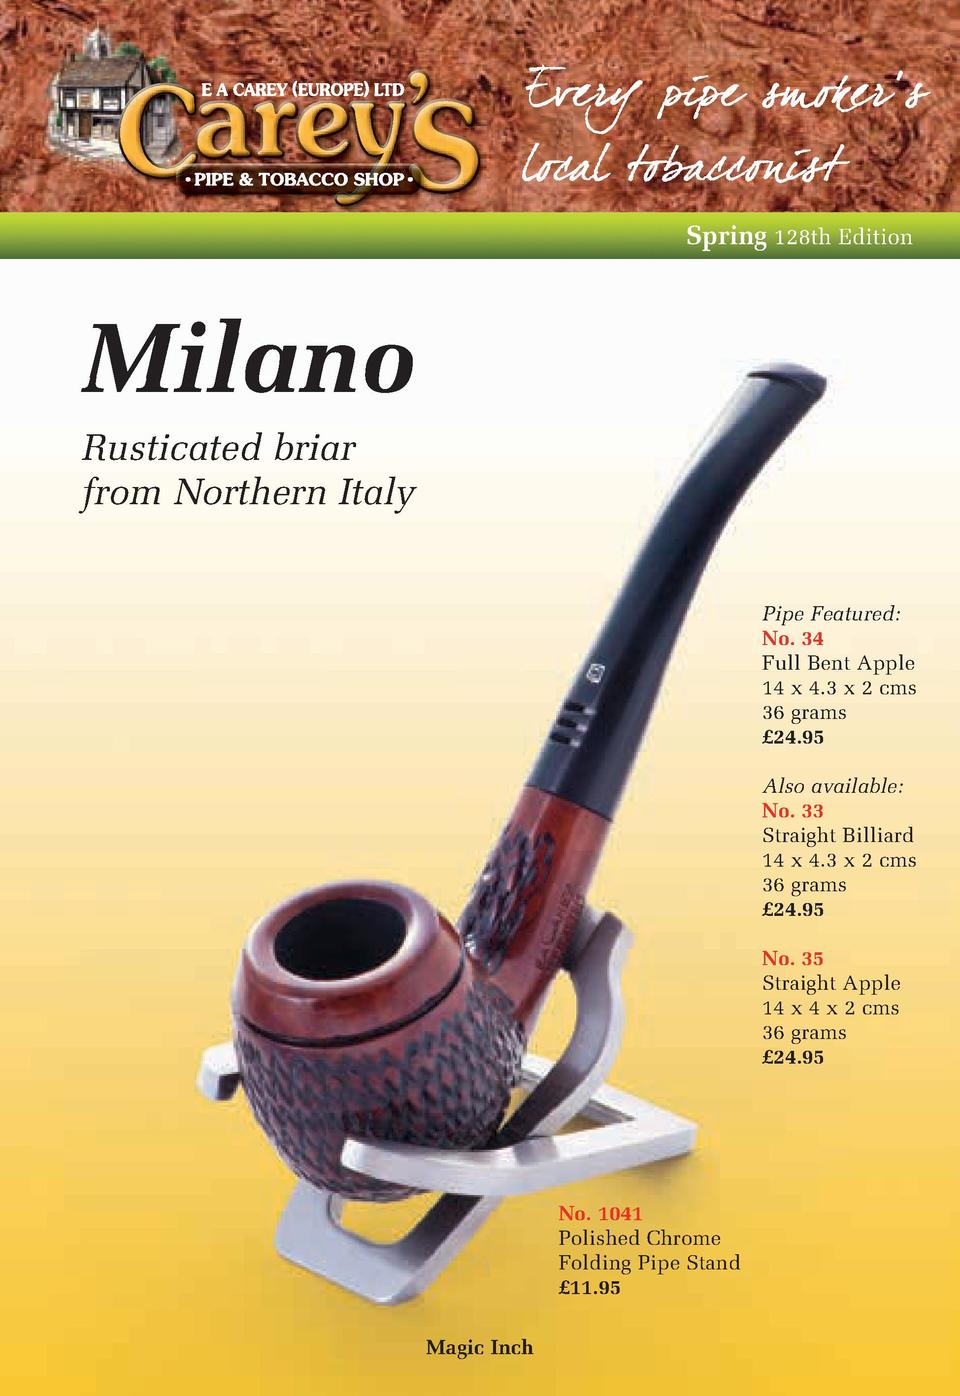 Spring 128th Edition  Milano Rusticated briar from Northern Italy Pipe Featured  No. 34 Full Bent Apple 14 x 4.3 x 2 cms 3...